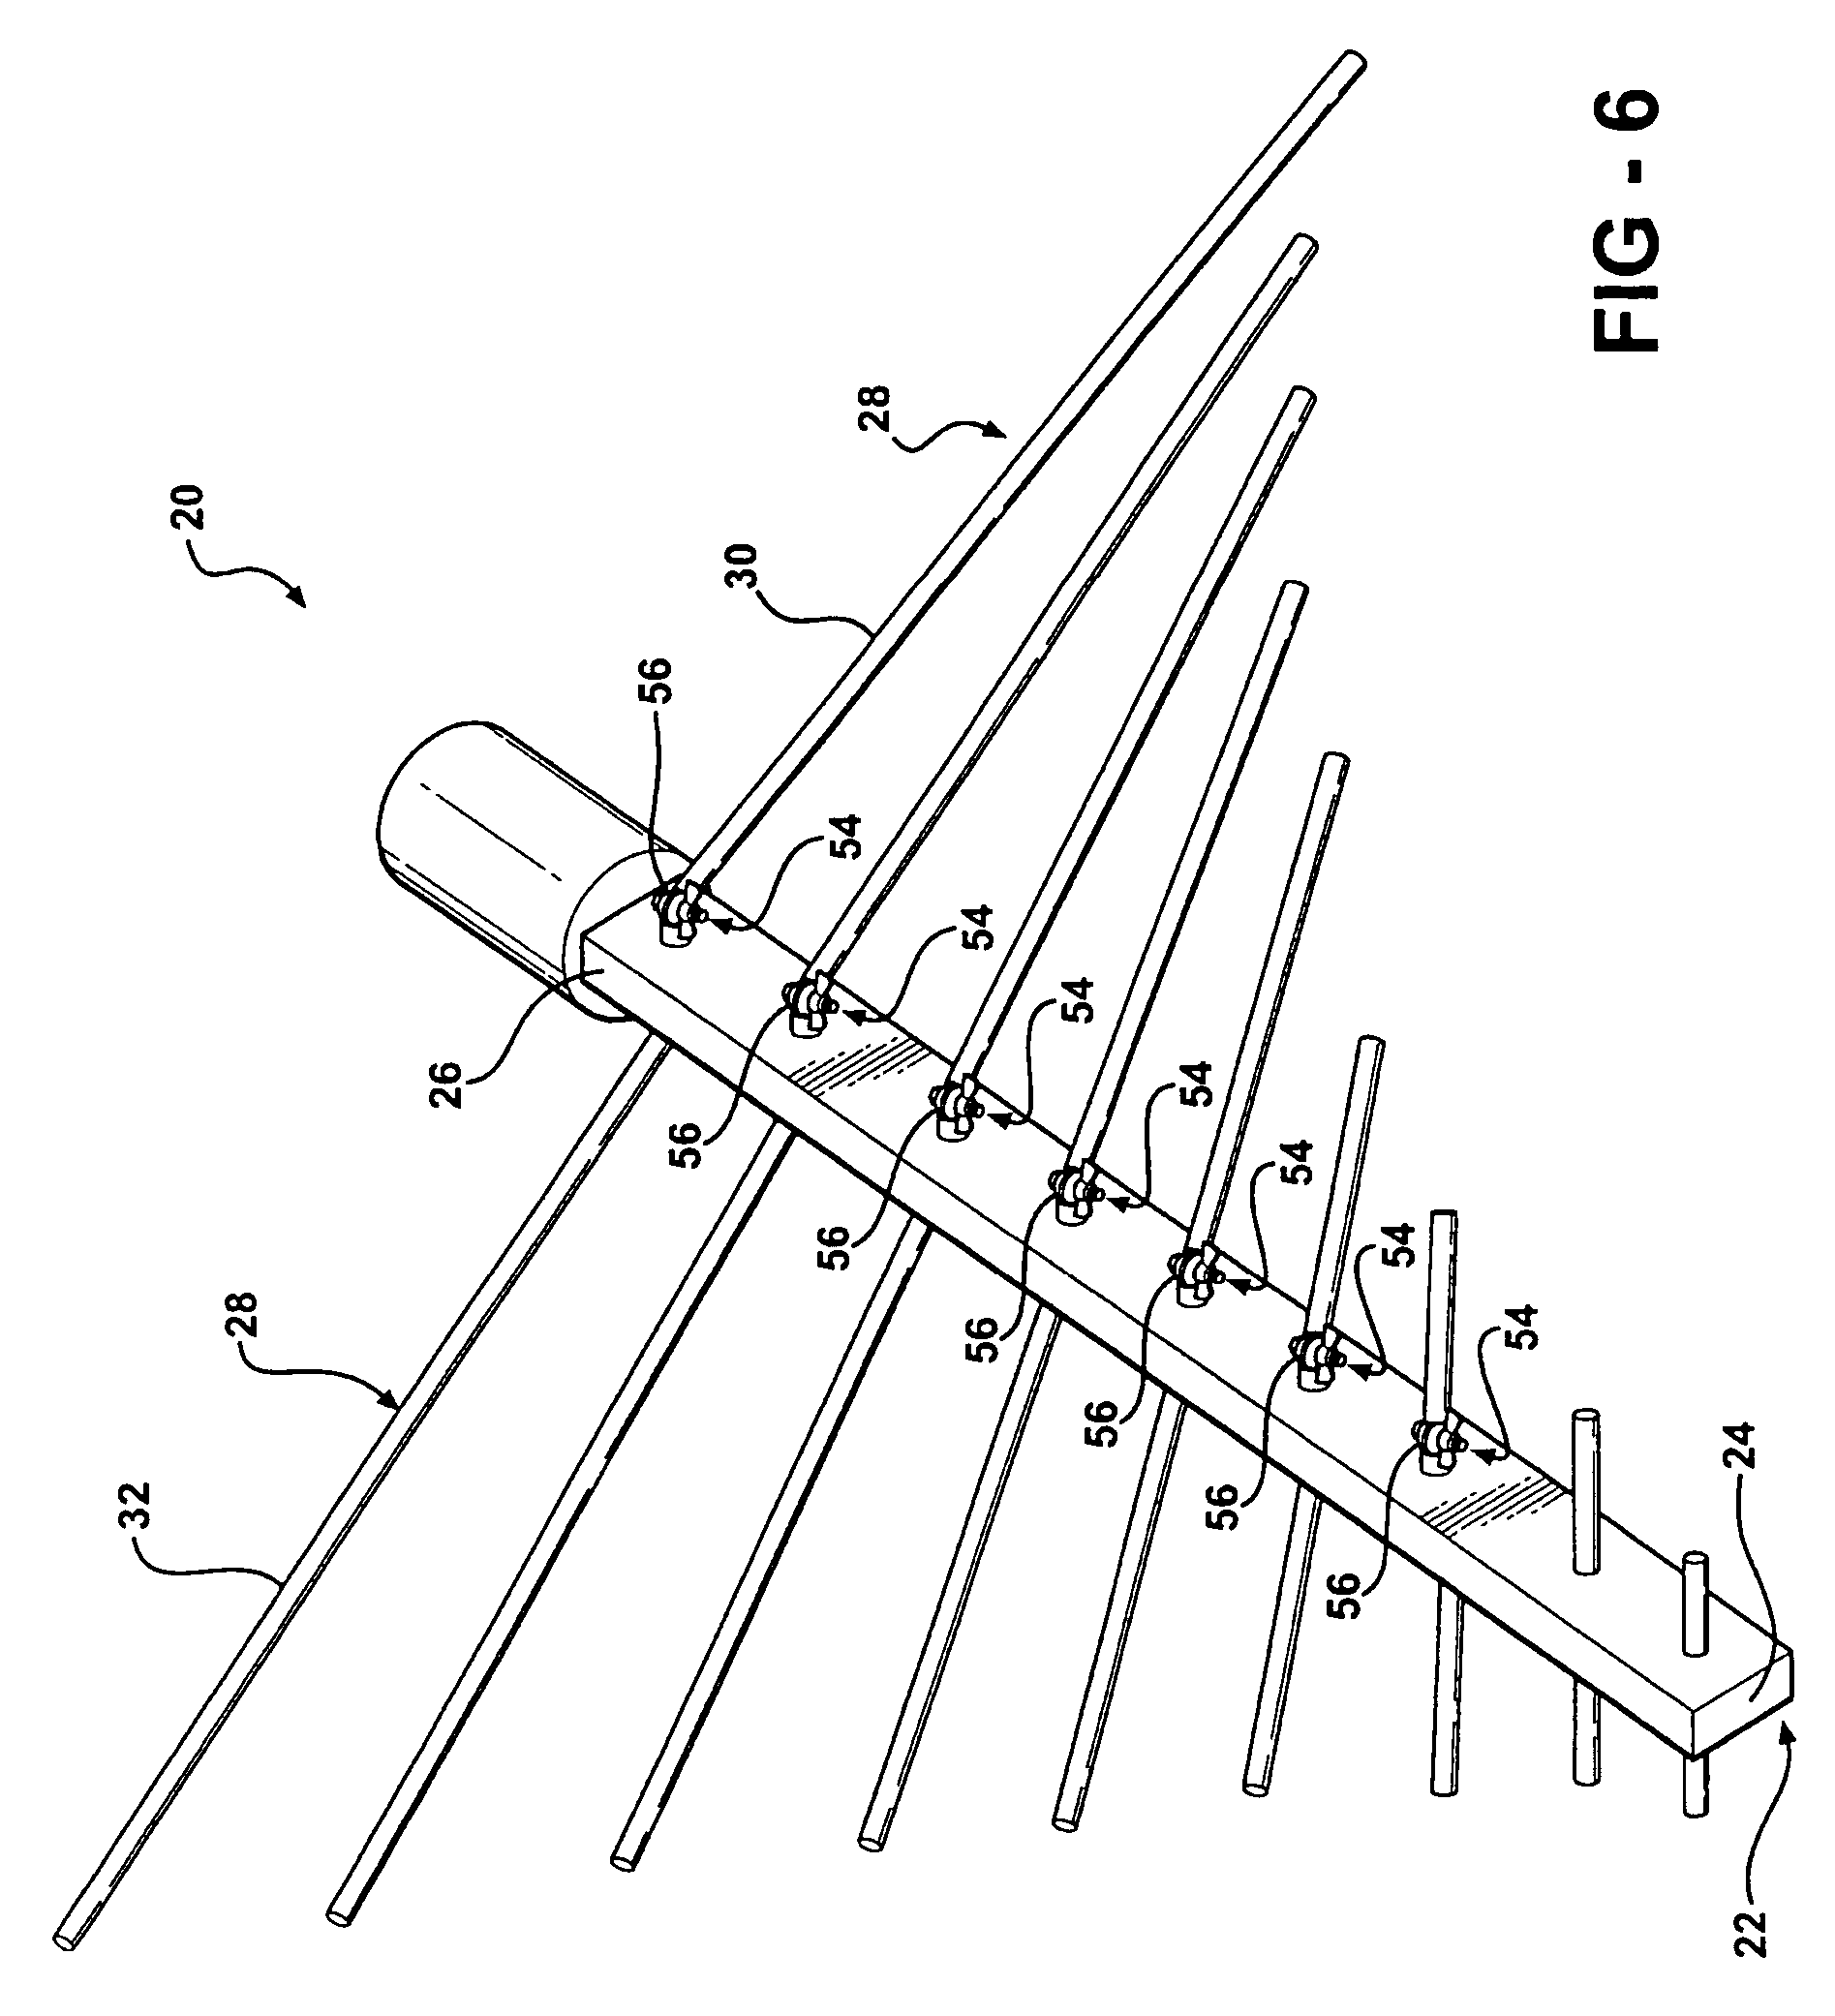 log-periodic-antenna-design images - frompo